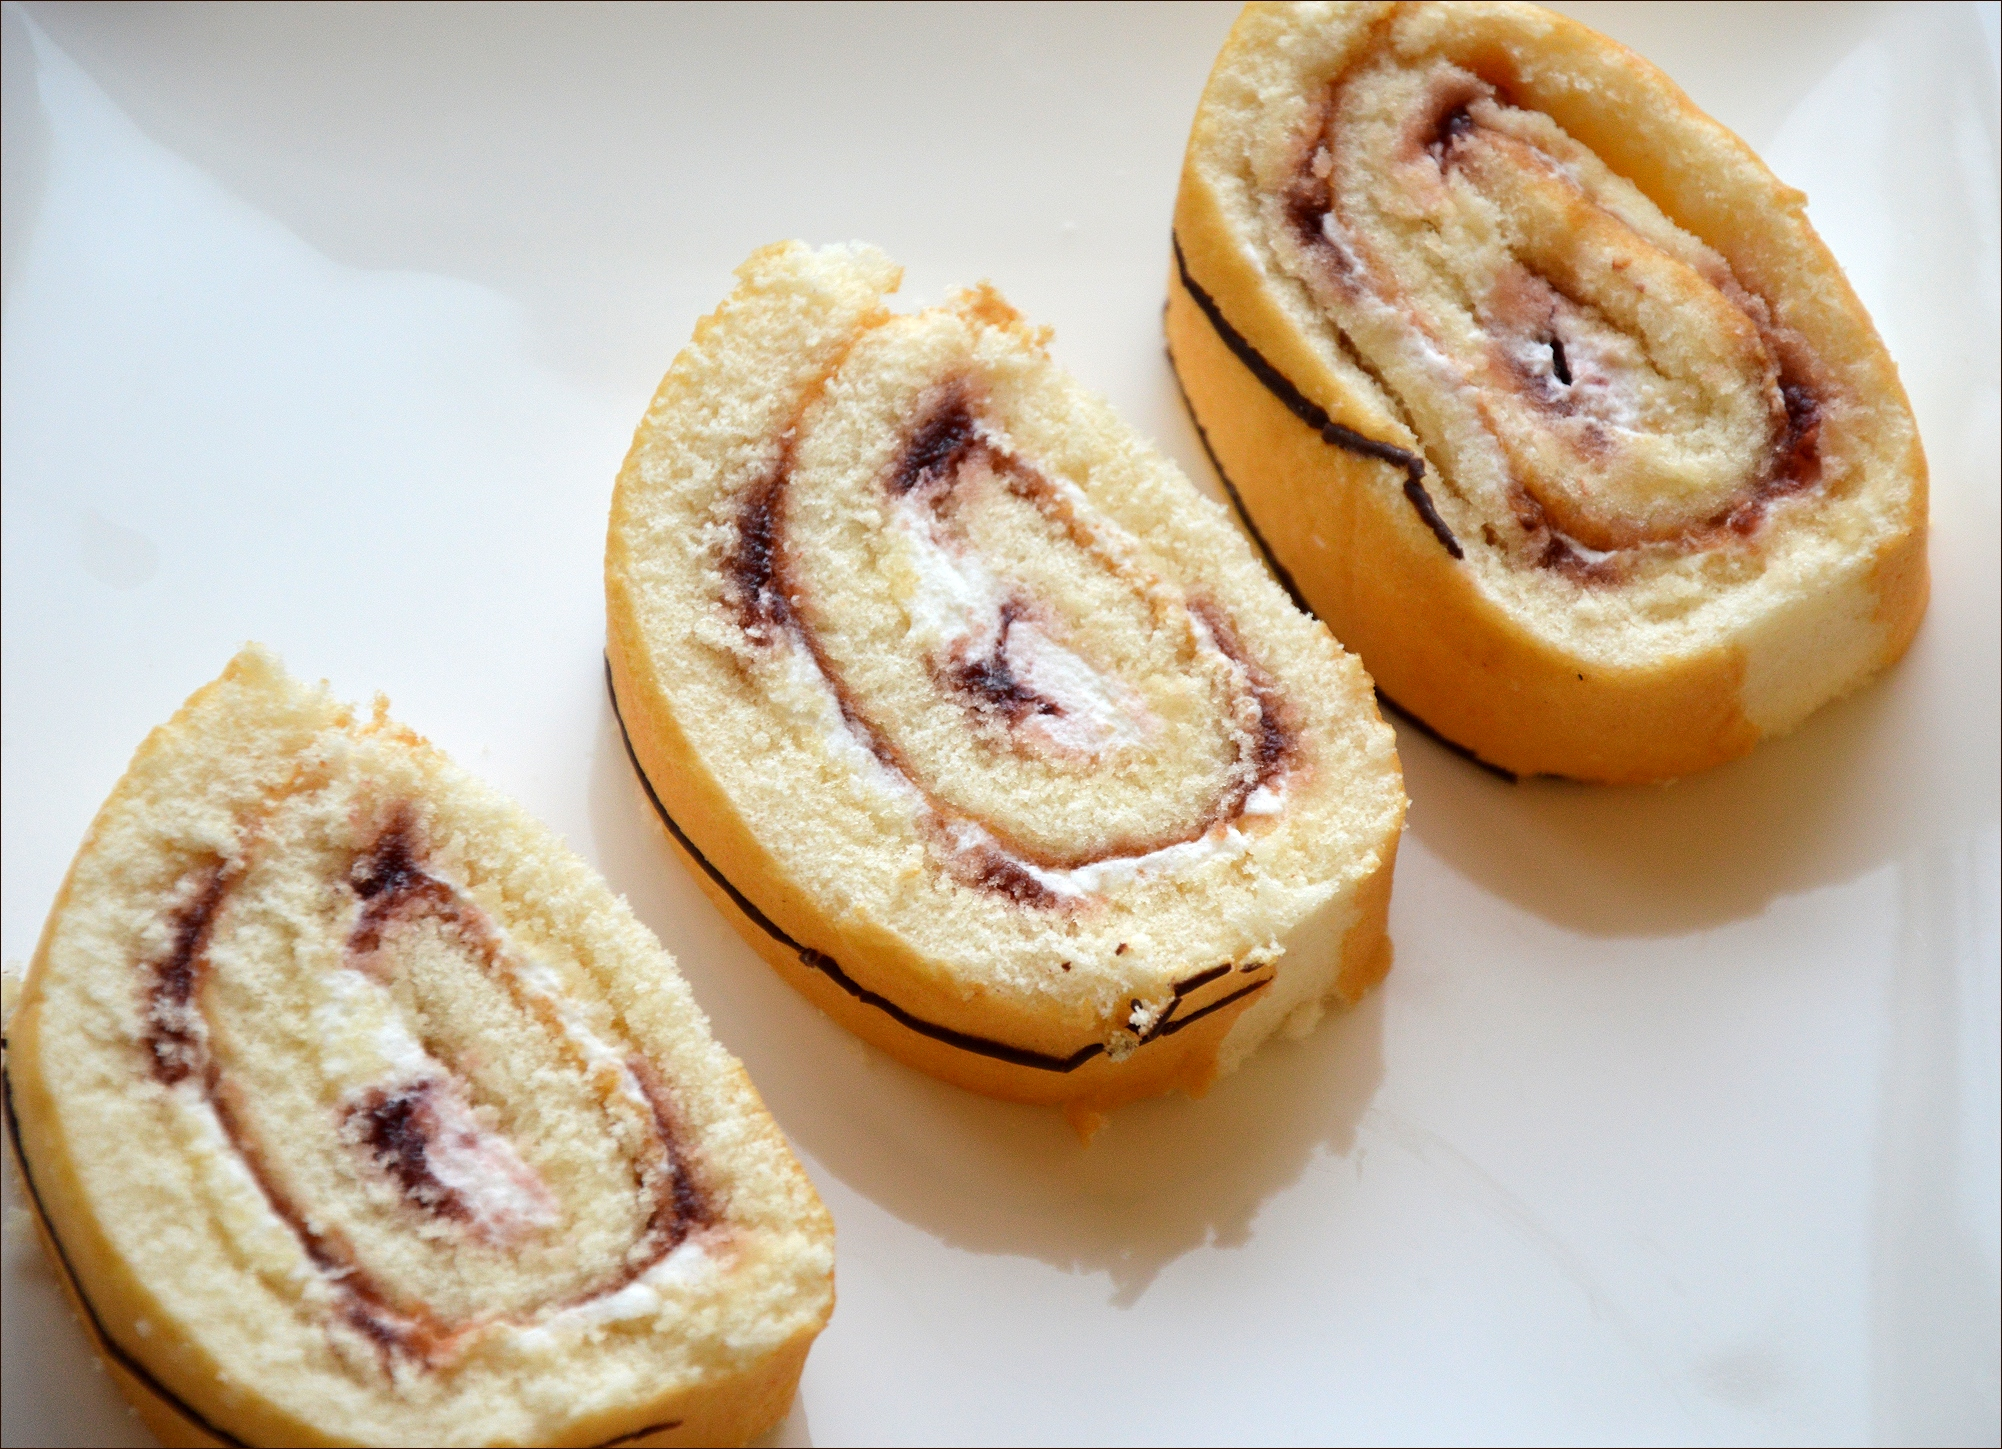 The jam roly-poly (PA)